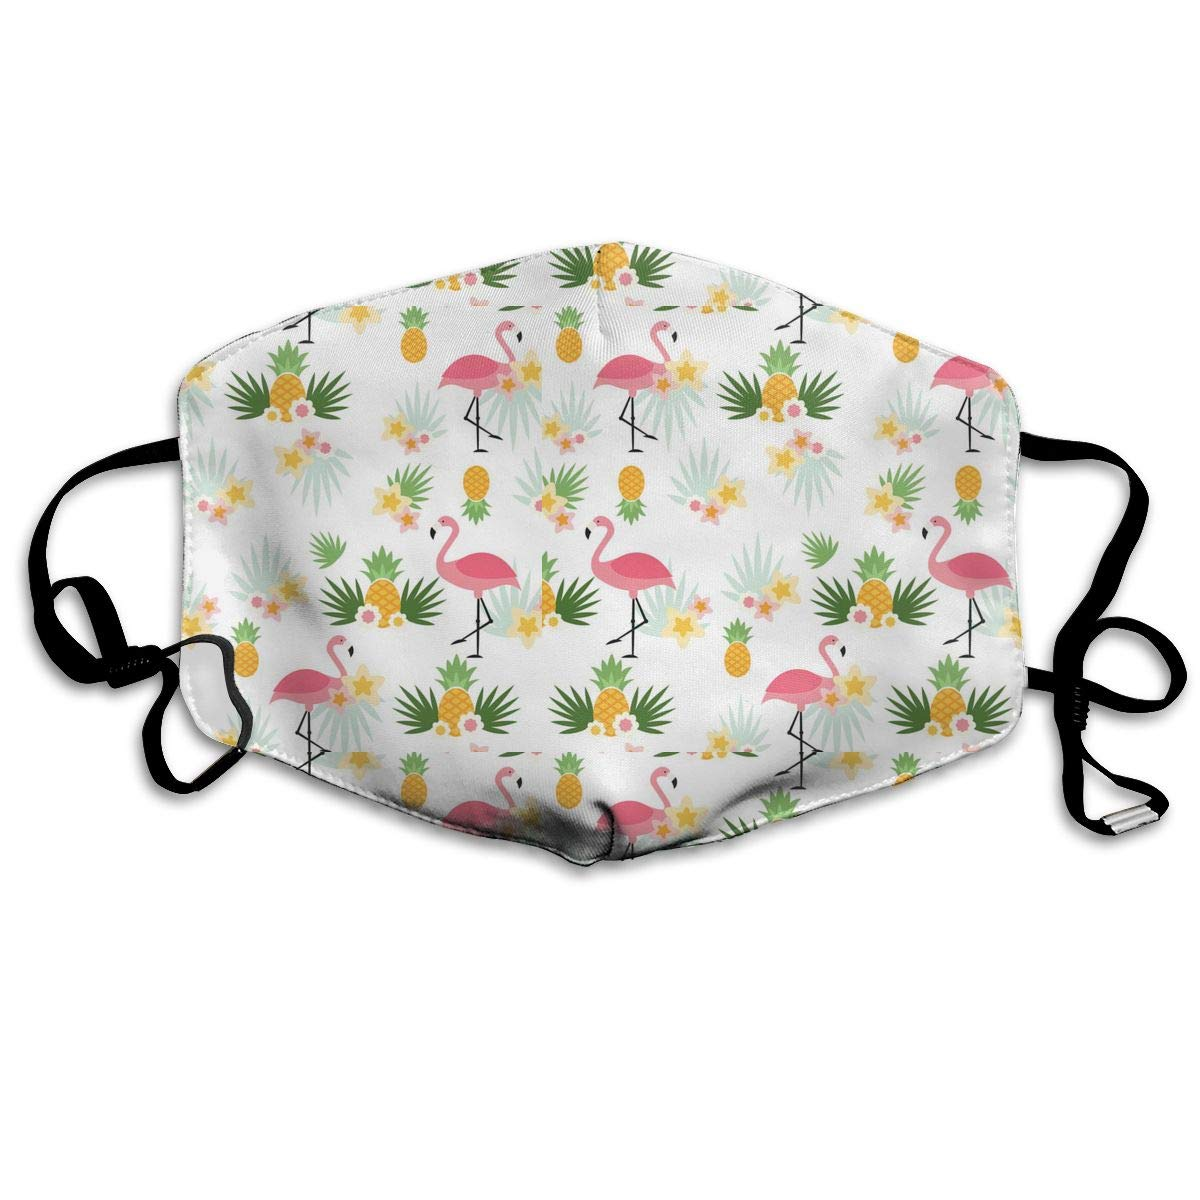 Mouth Mask Flamingos And Pineapples Print Masks - Breathable Adjustable Windproof Mouth-Muffle, Camping Running For Women And